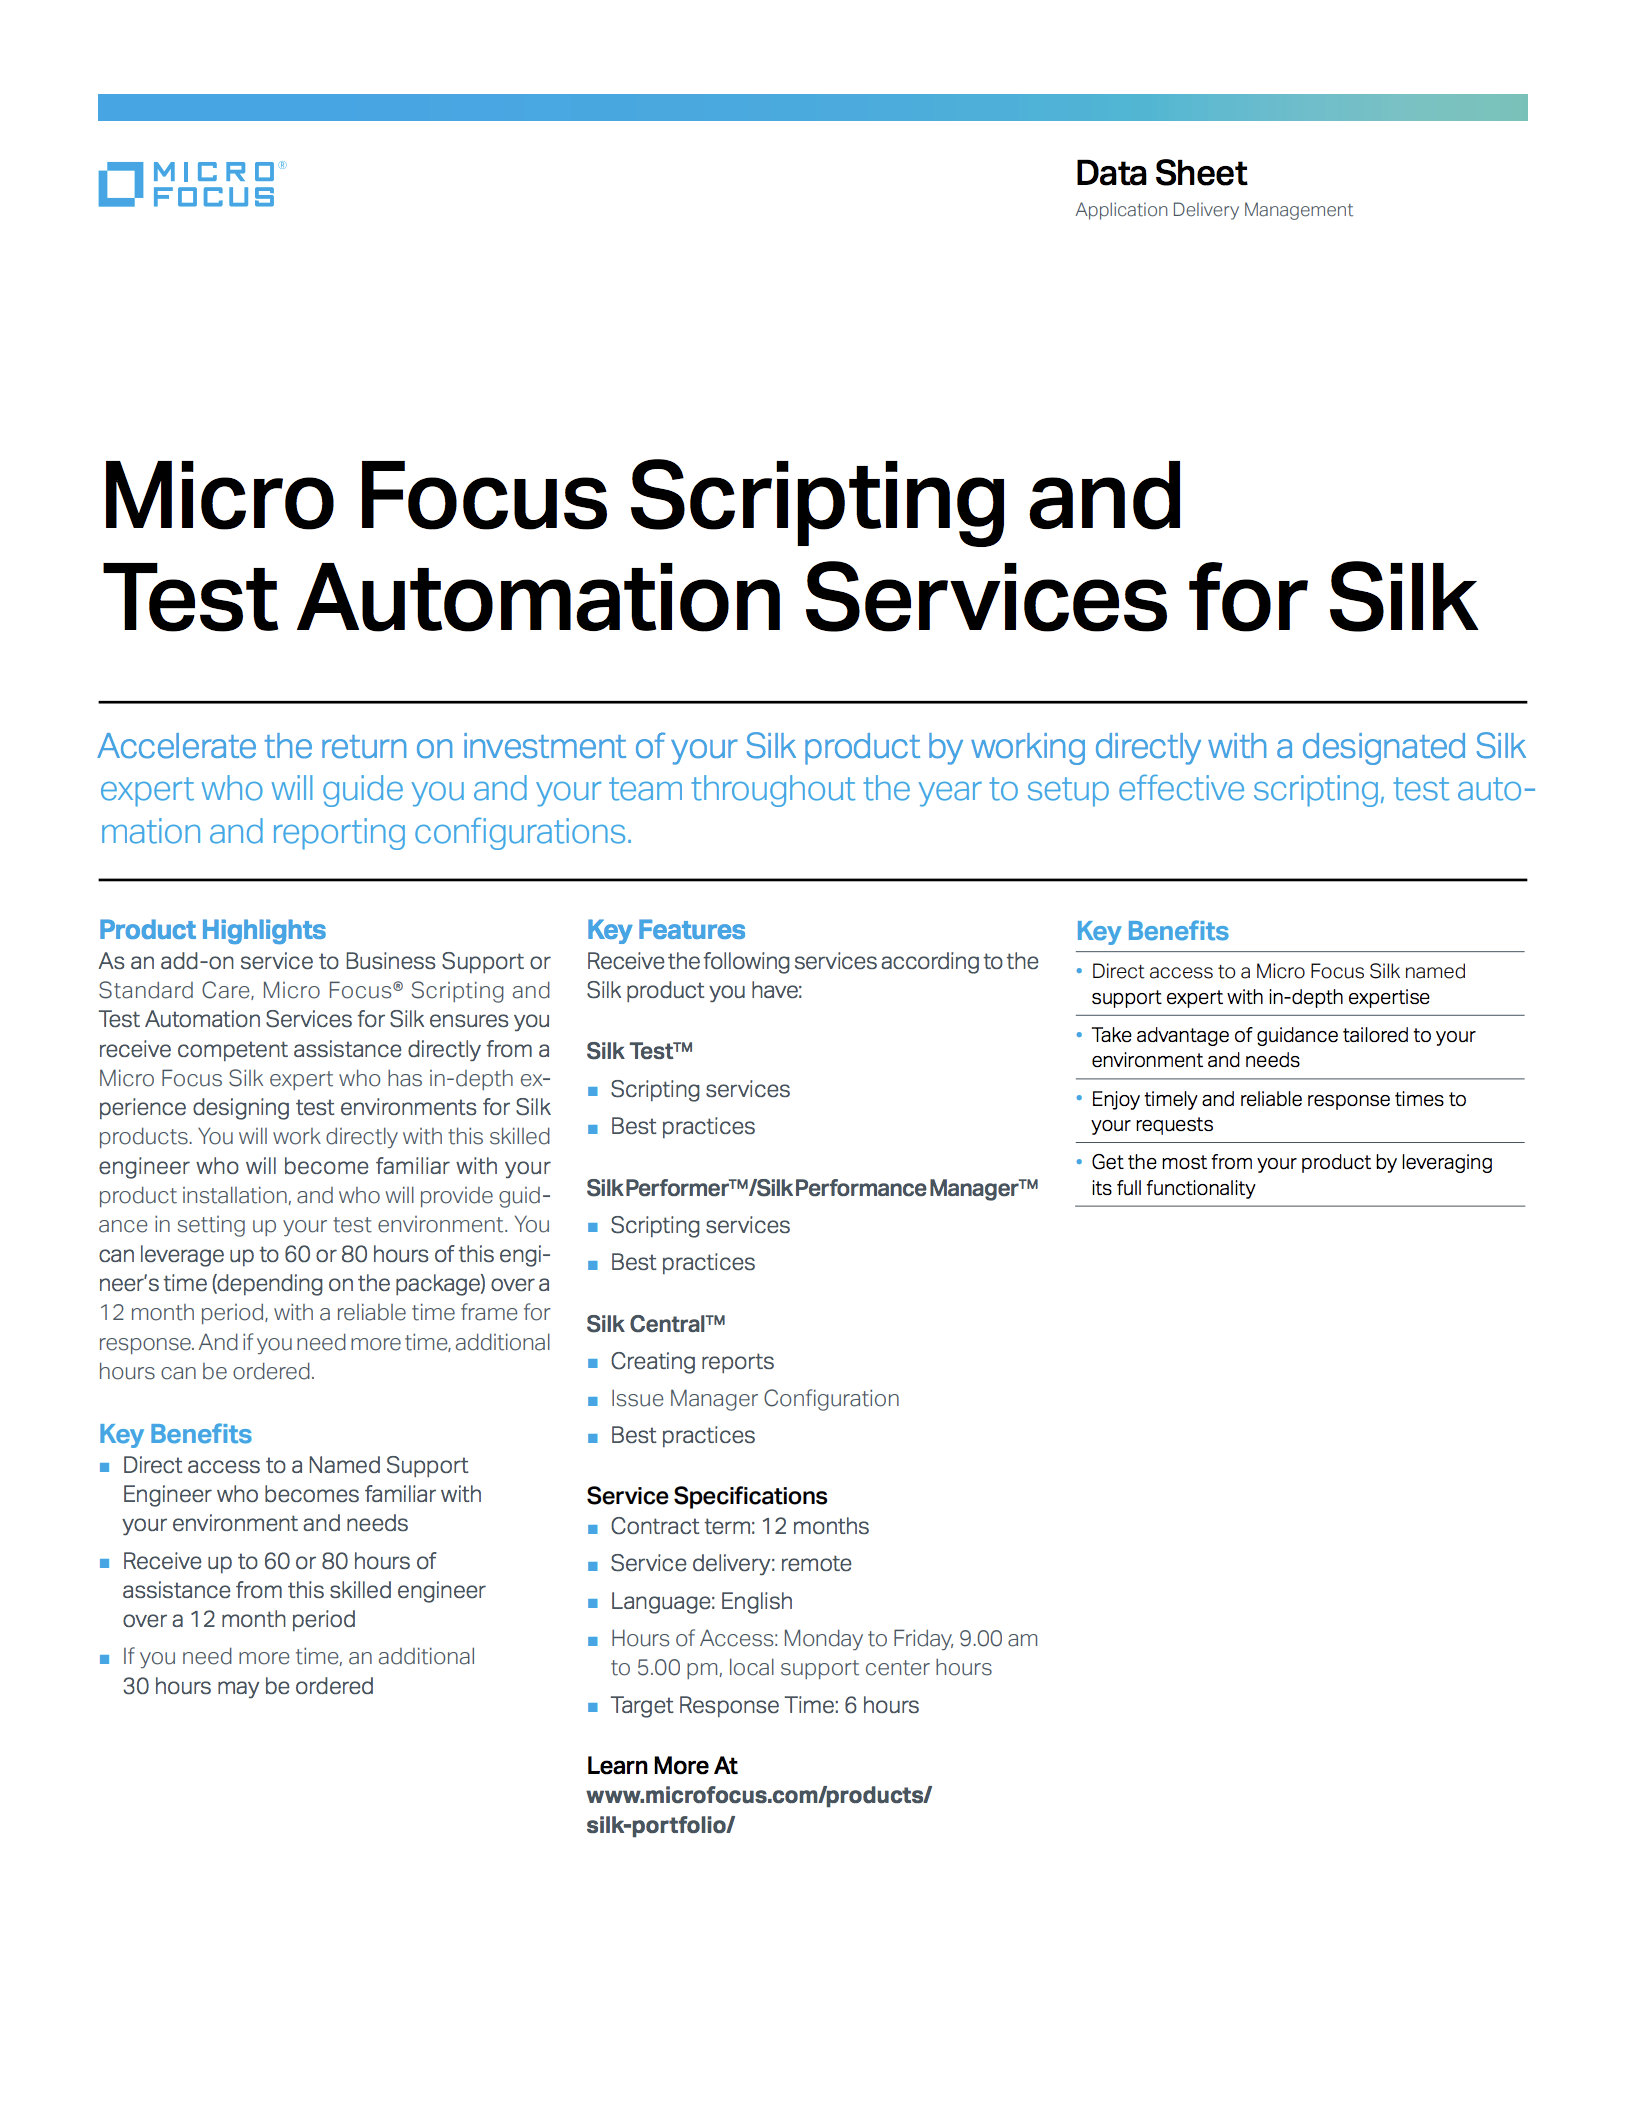 Micro Focus Scripting and Test Automation Services for Silk